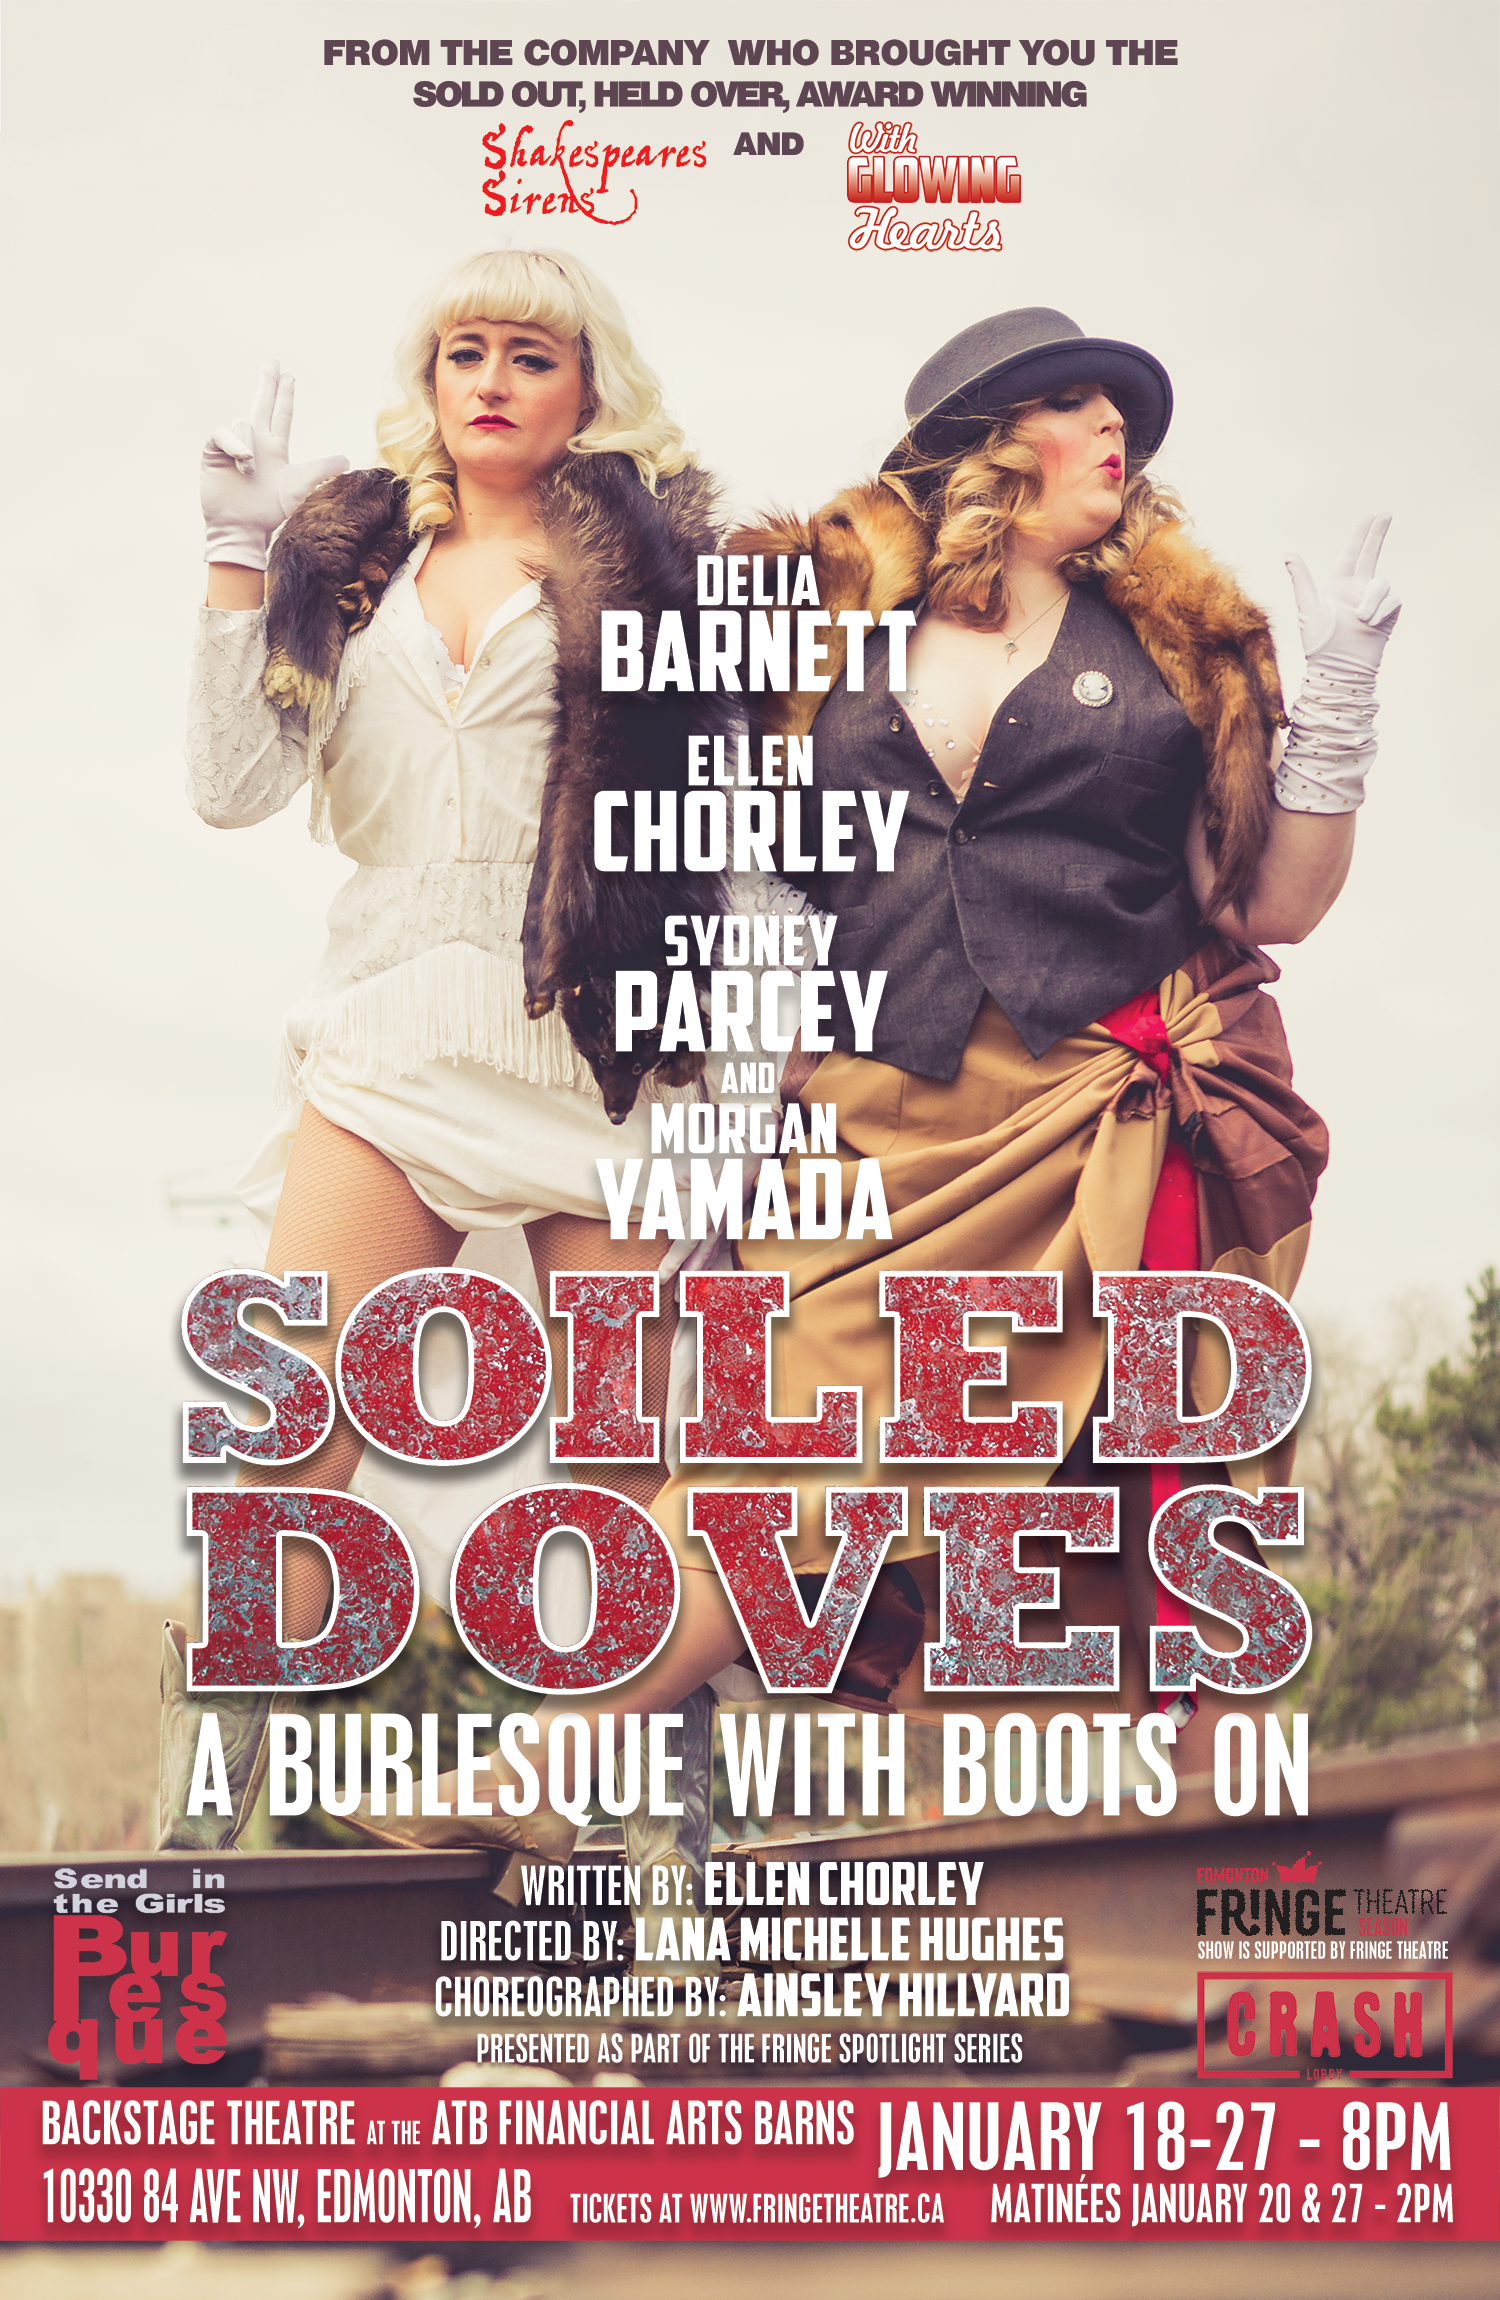 Soiled Doves - Poster - Web 2.png